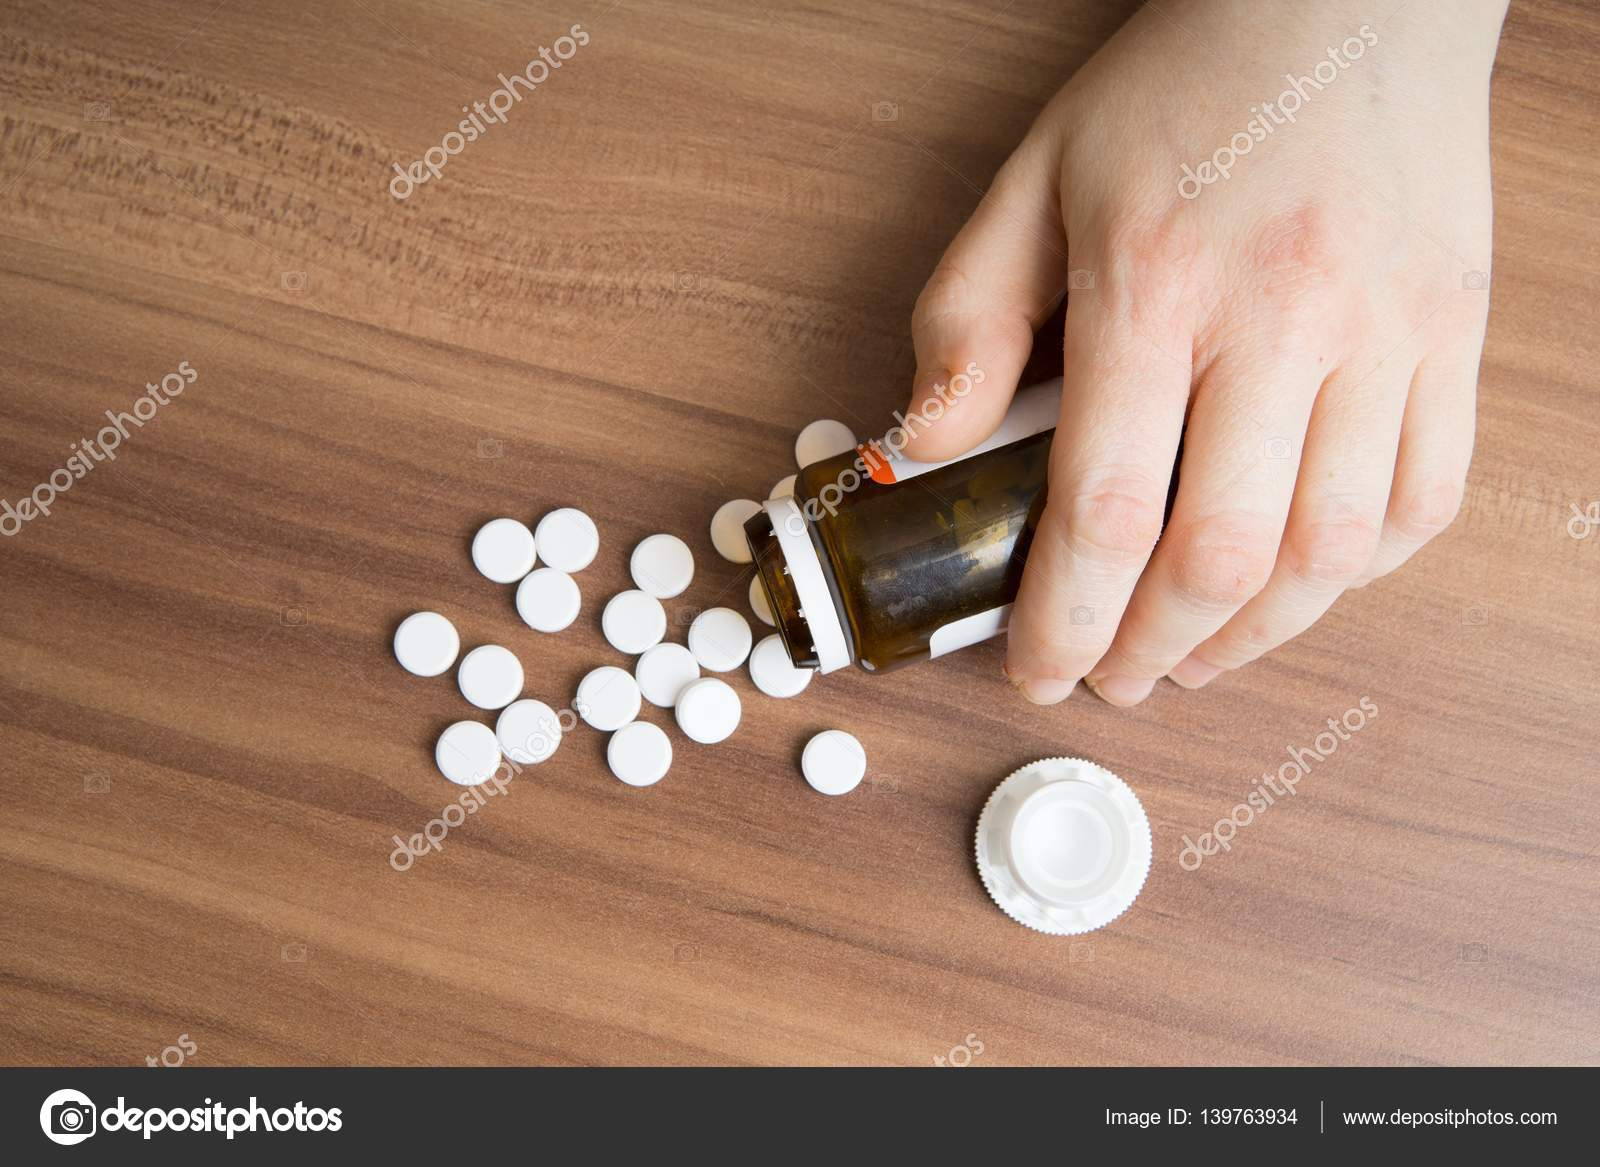 who can use zolpidem overdose suicide